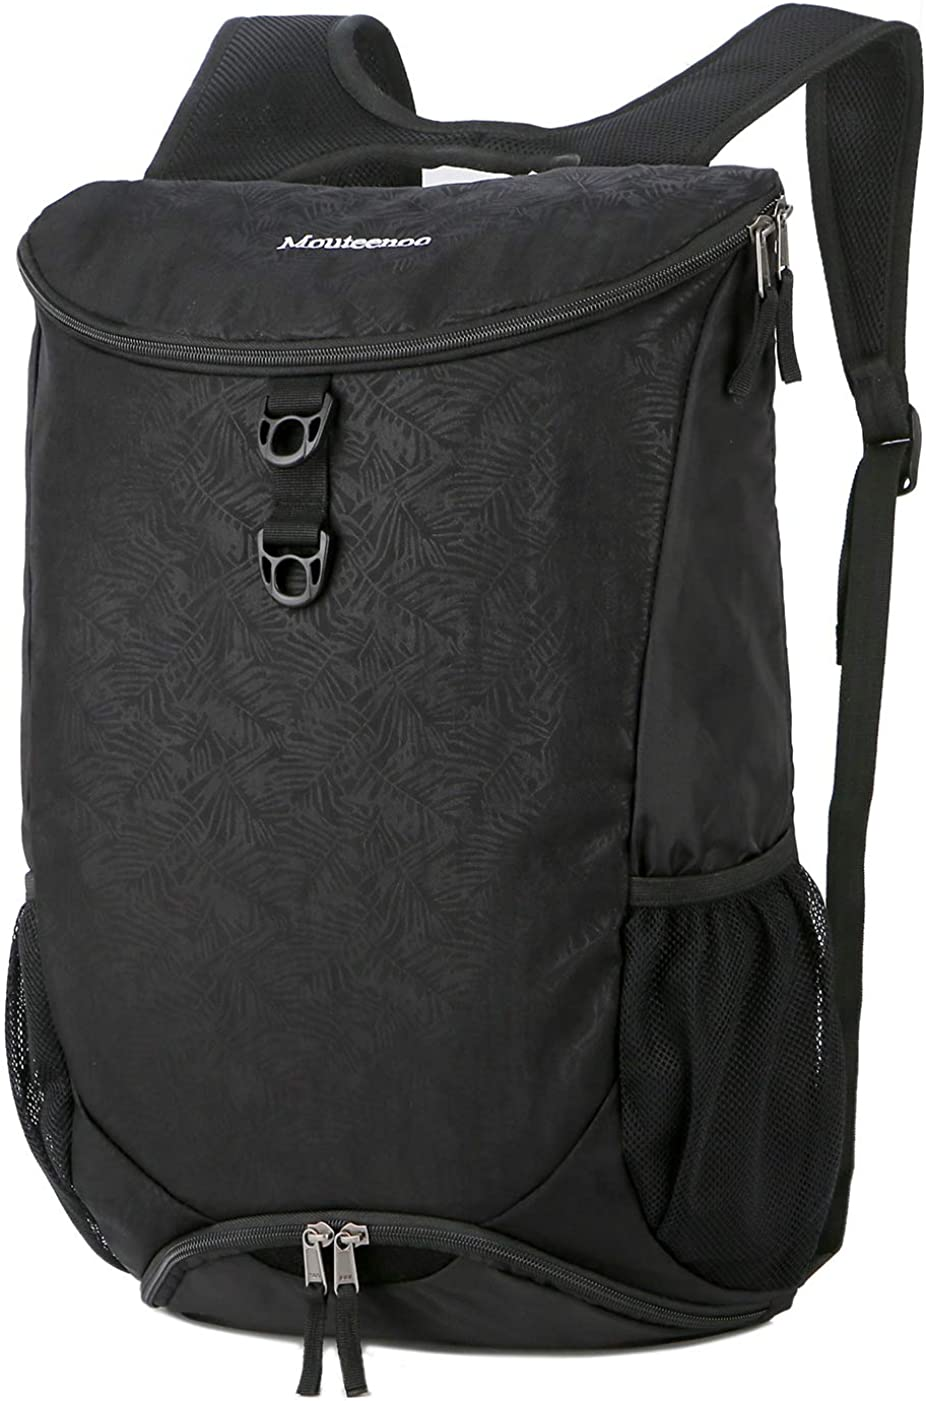 Mouteenoo Sport Gym Backpack Shoes Compartment Drawstring Backpack Men Women